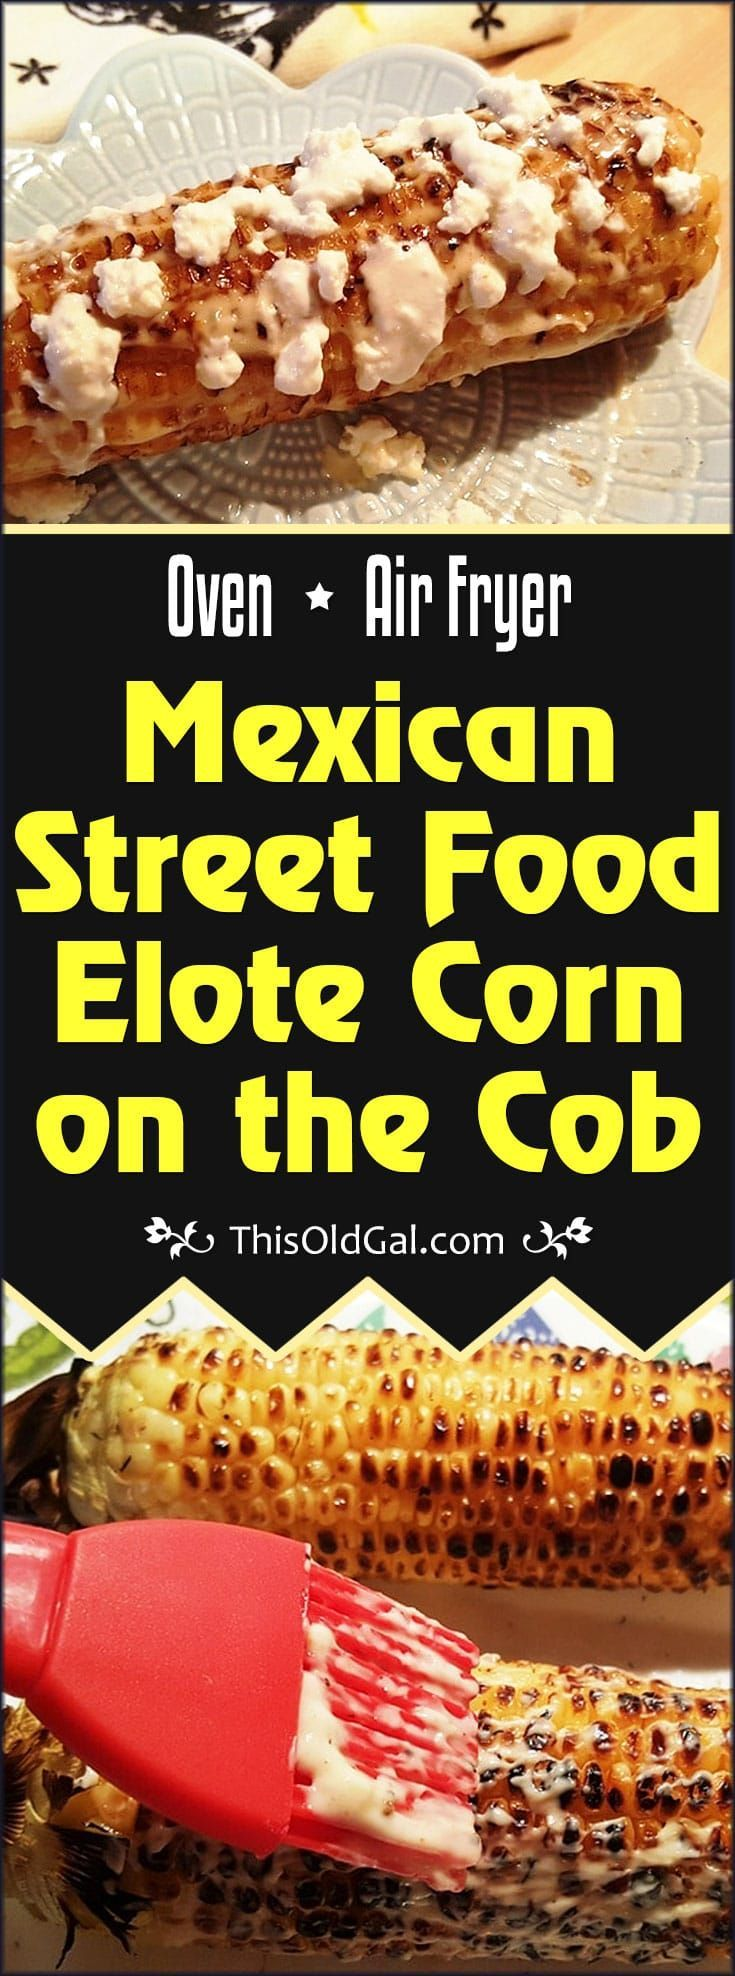 This Oven Version of Elote Mexican Street Food Corn on the Cob, will take you back to the streets of Tijuana with the wonderful aroma of great food. via @thisoldgalcooks